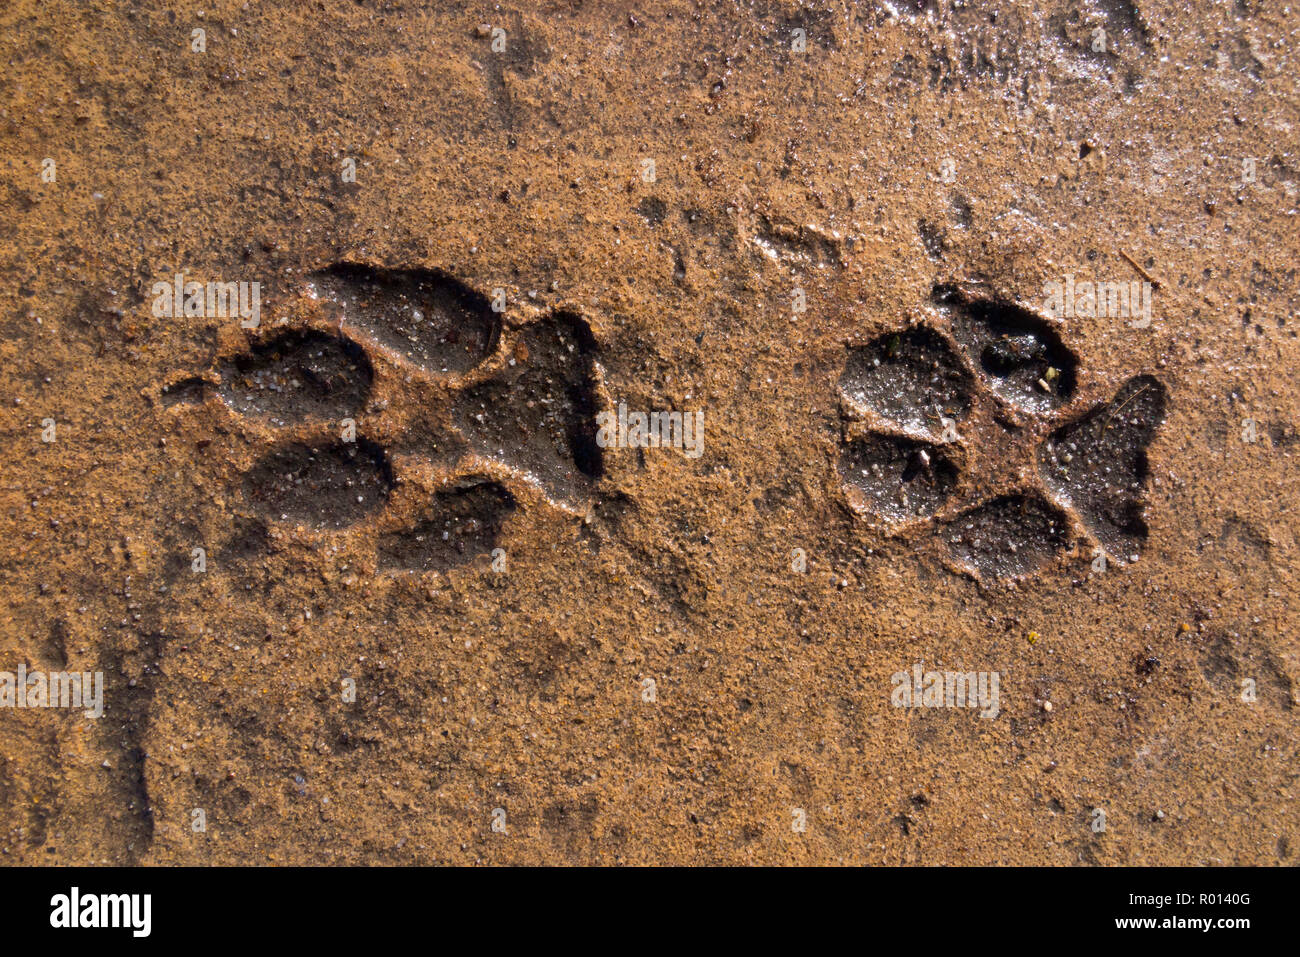 Paw print / paws prints left in wet concrete – which has now dried and set hard – of animals or wild animal that walked in the cement to become a permanent reminder. (103) - Stock Image